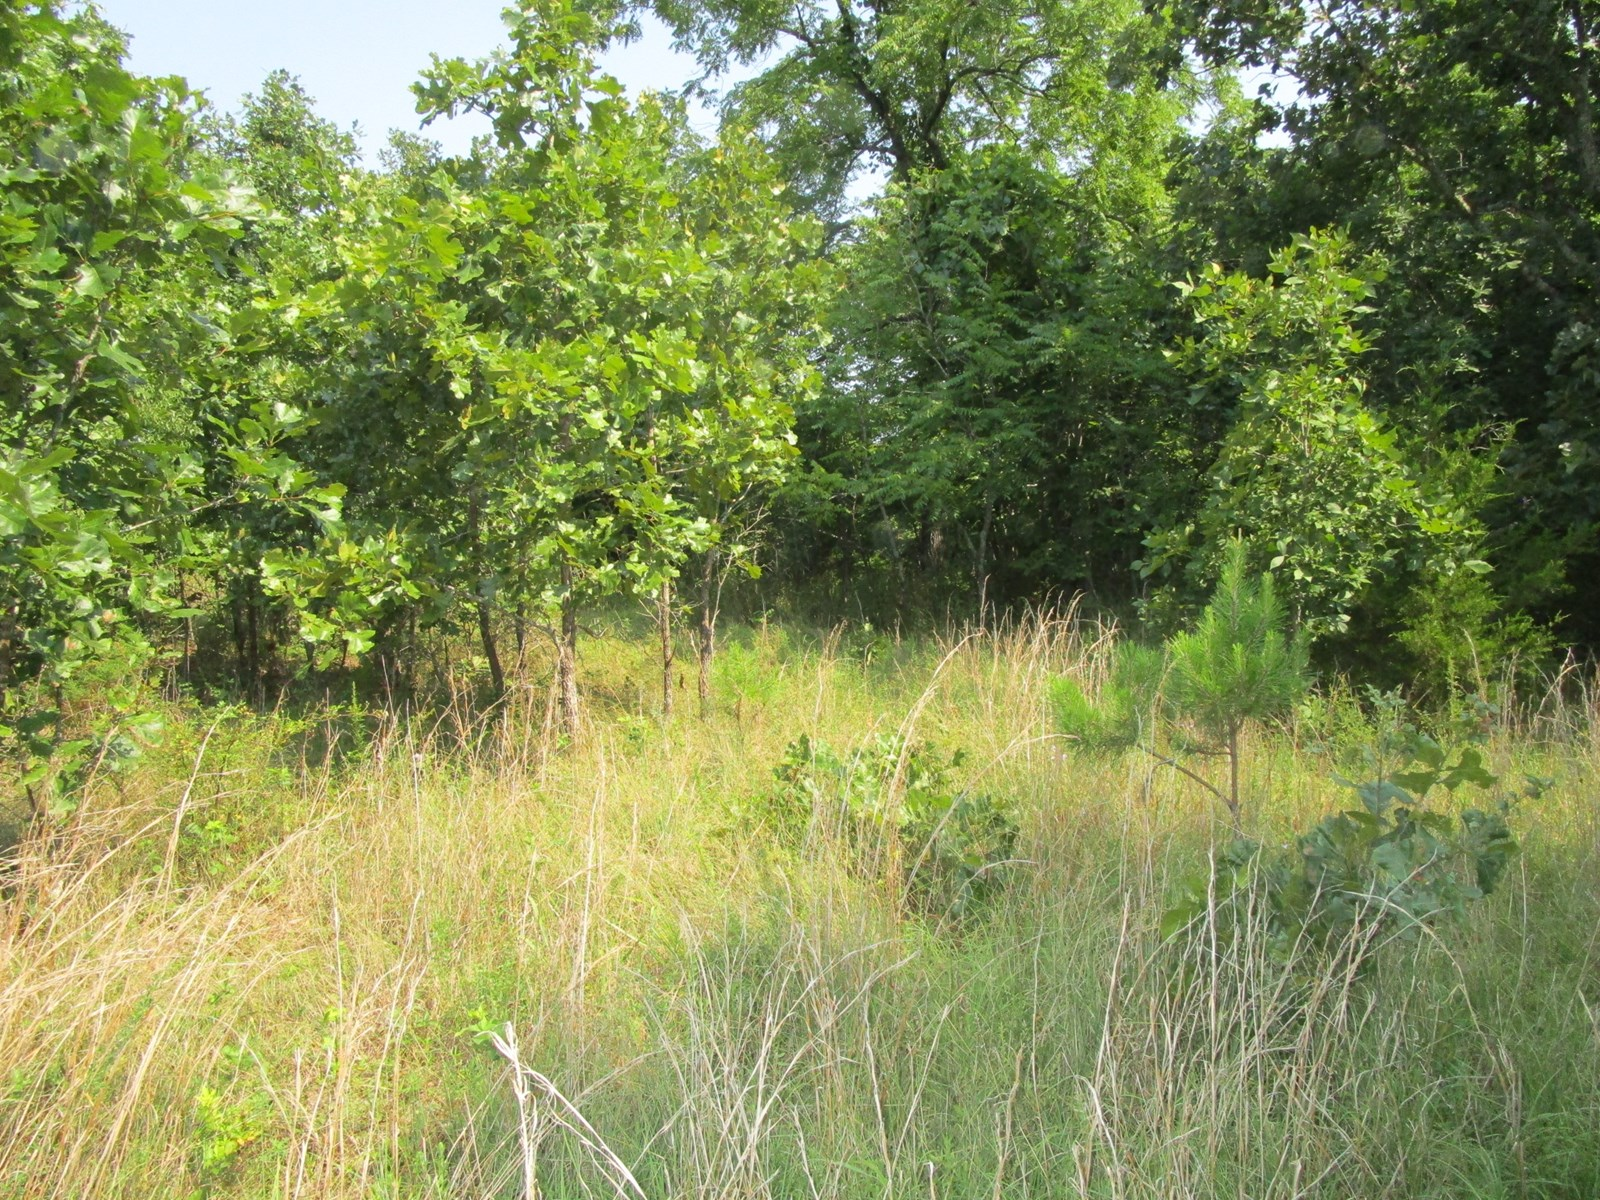 Southern Missouri Land for Sale - Hunting Property in MO